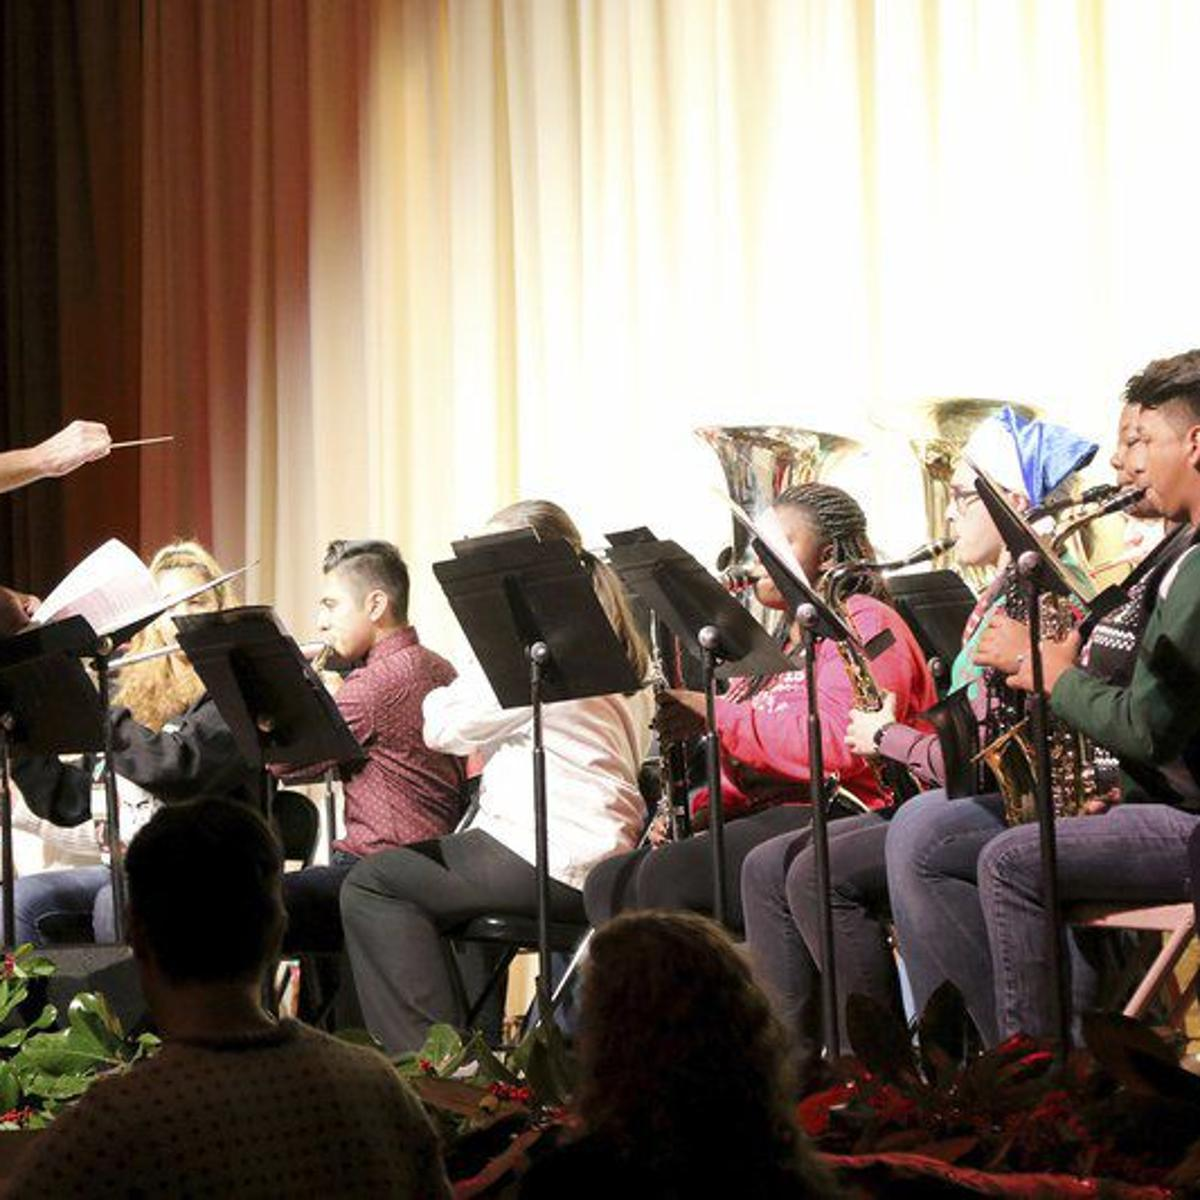 Eccc 2020 Christmas Events ECCC 'Christmas Spectacular' planned Nov. 27 | Lifestyles